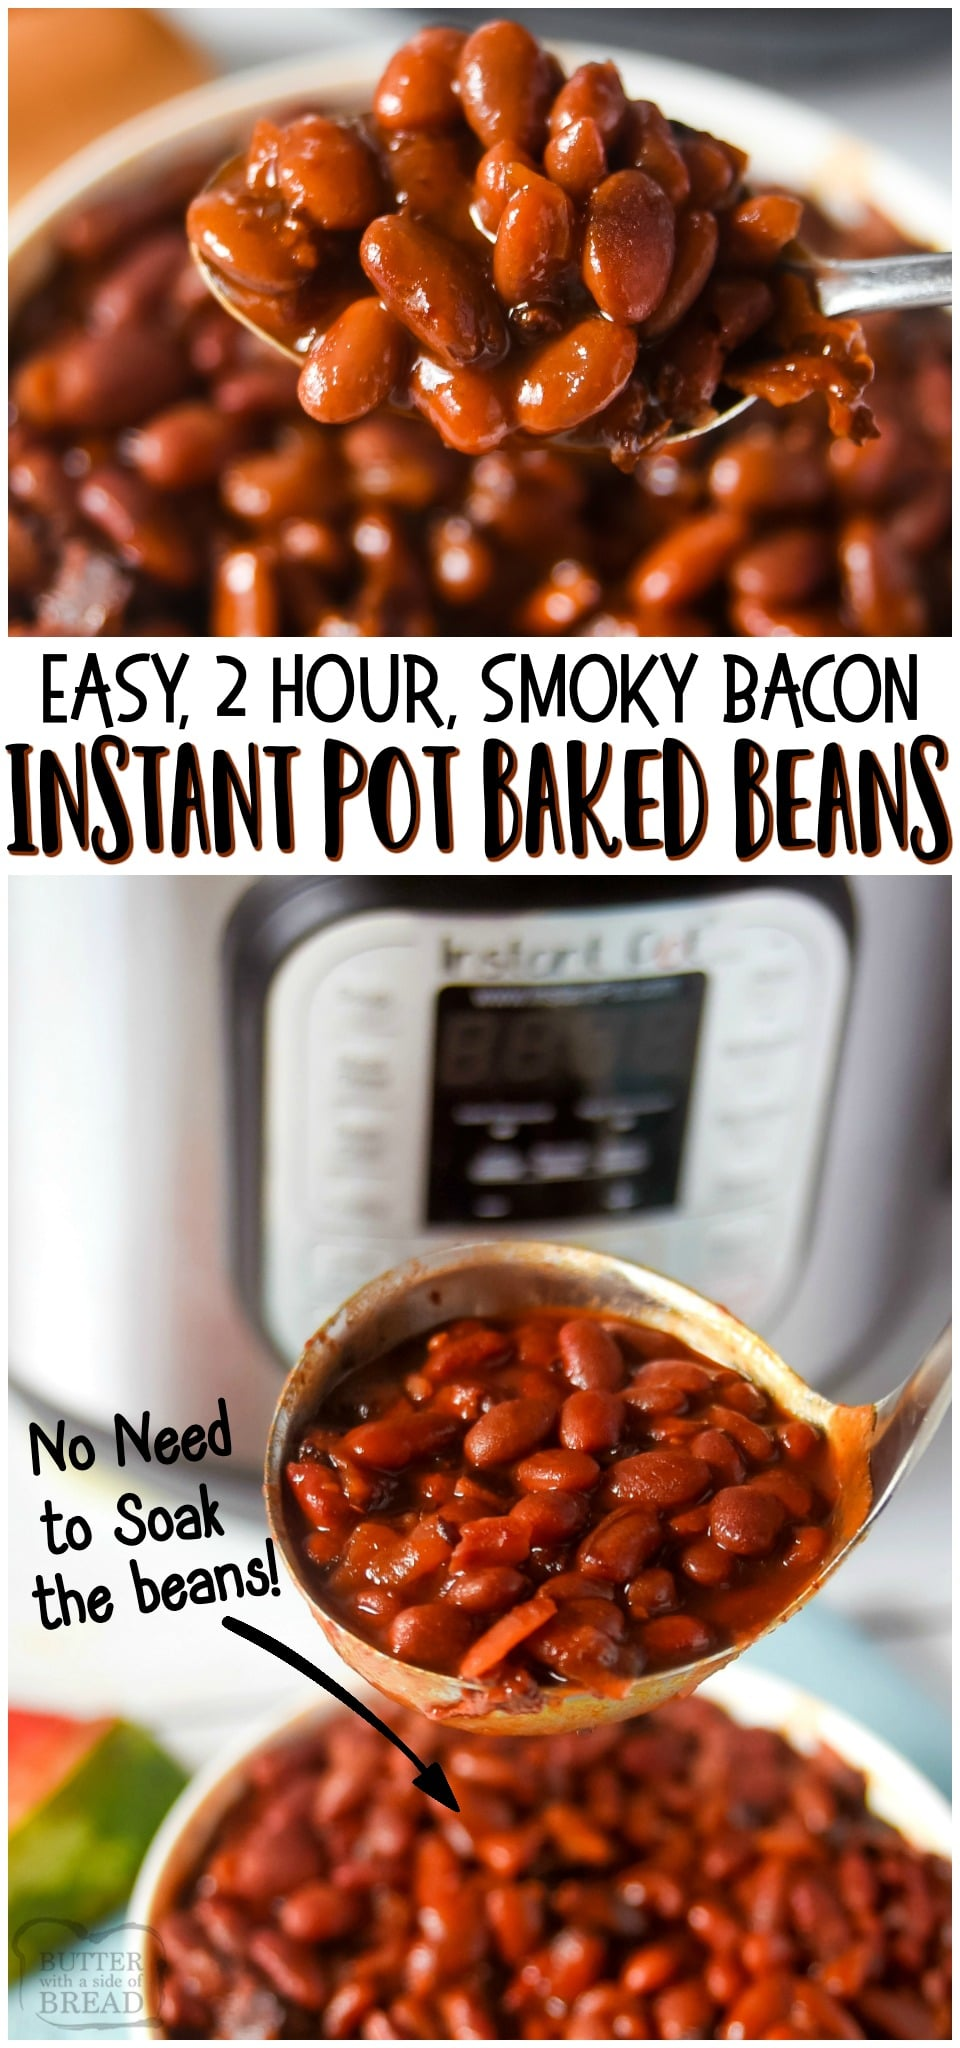 Easy Instant Pot Smoky Baked Beans are made with dry pinto beans (no soaking!), bacon, onion and spices! Hearty, flavorful baked bean recipe that tastes like it's been slow cooking for days, even though it's done in 2 hours! #instantpot #bakedbeans #beans #bacon #smoky #recipe from BUTTER WITH A SIDE OF BREAD